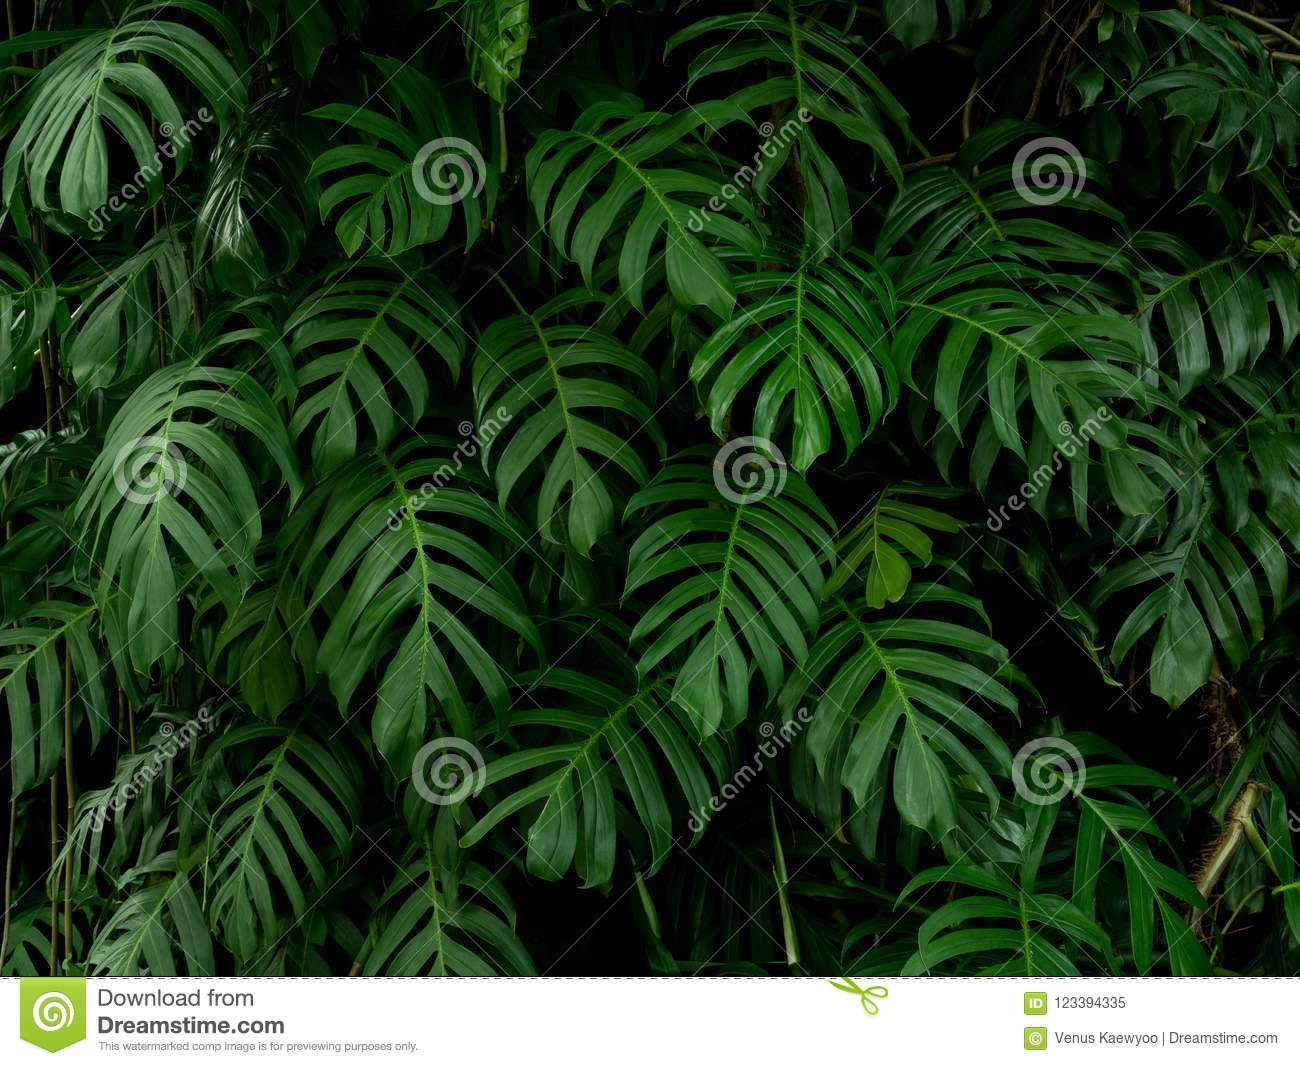 Green monstera philodendron tropical plant leaves vine background, backdrop